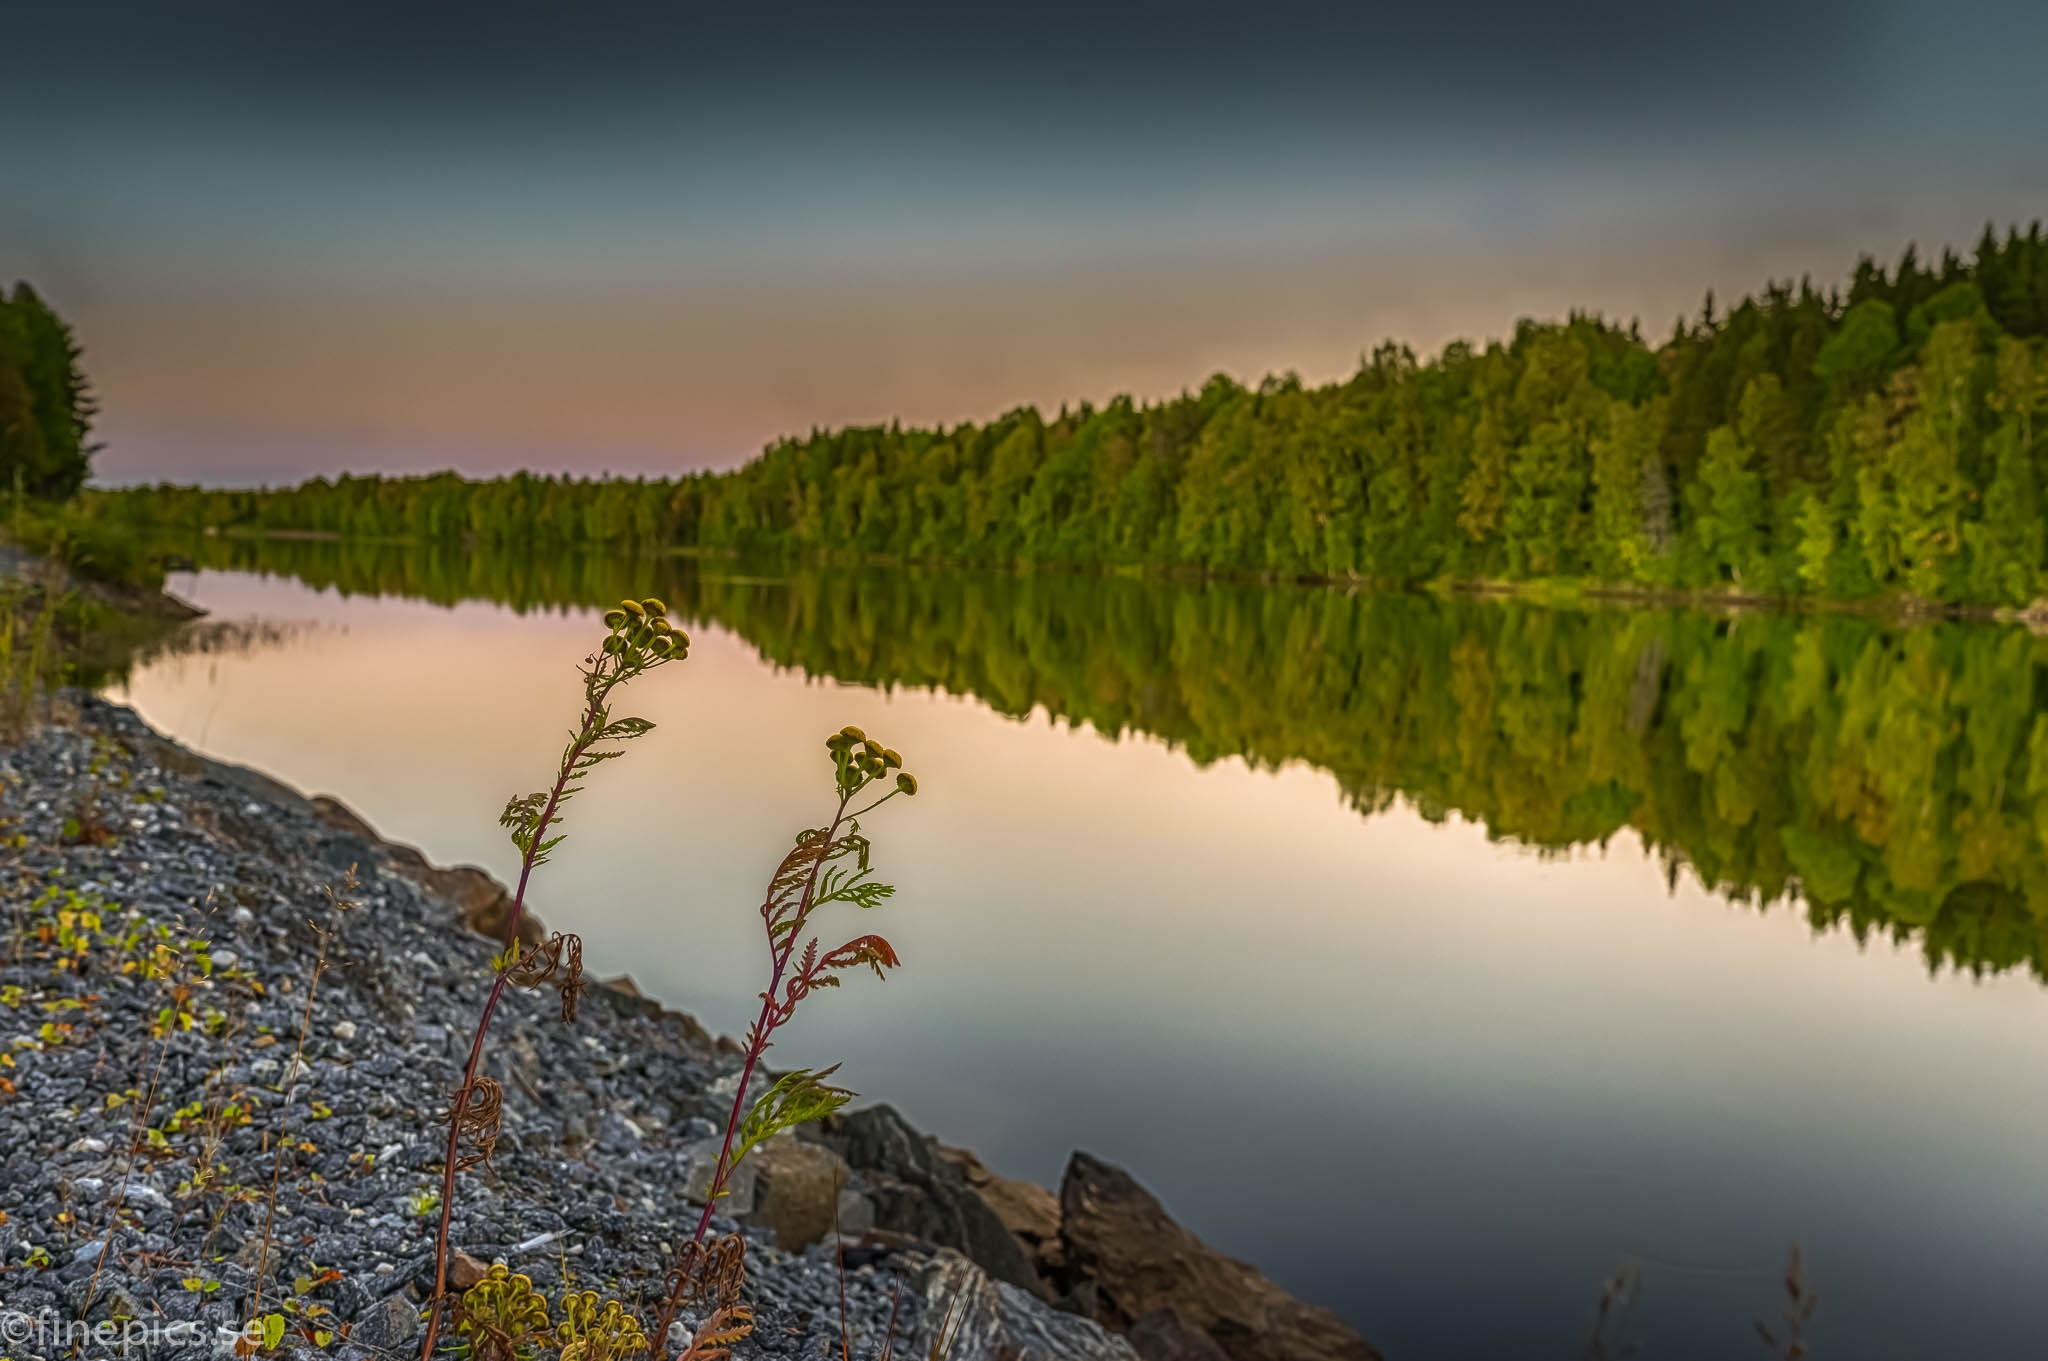 Weed at the edge of the river. by Johan Bergenstråhle